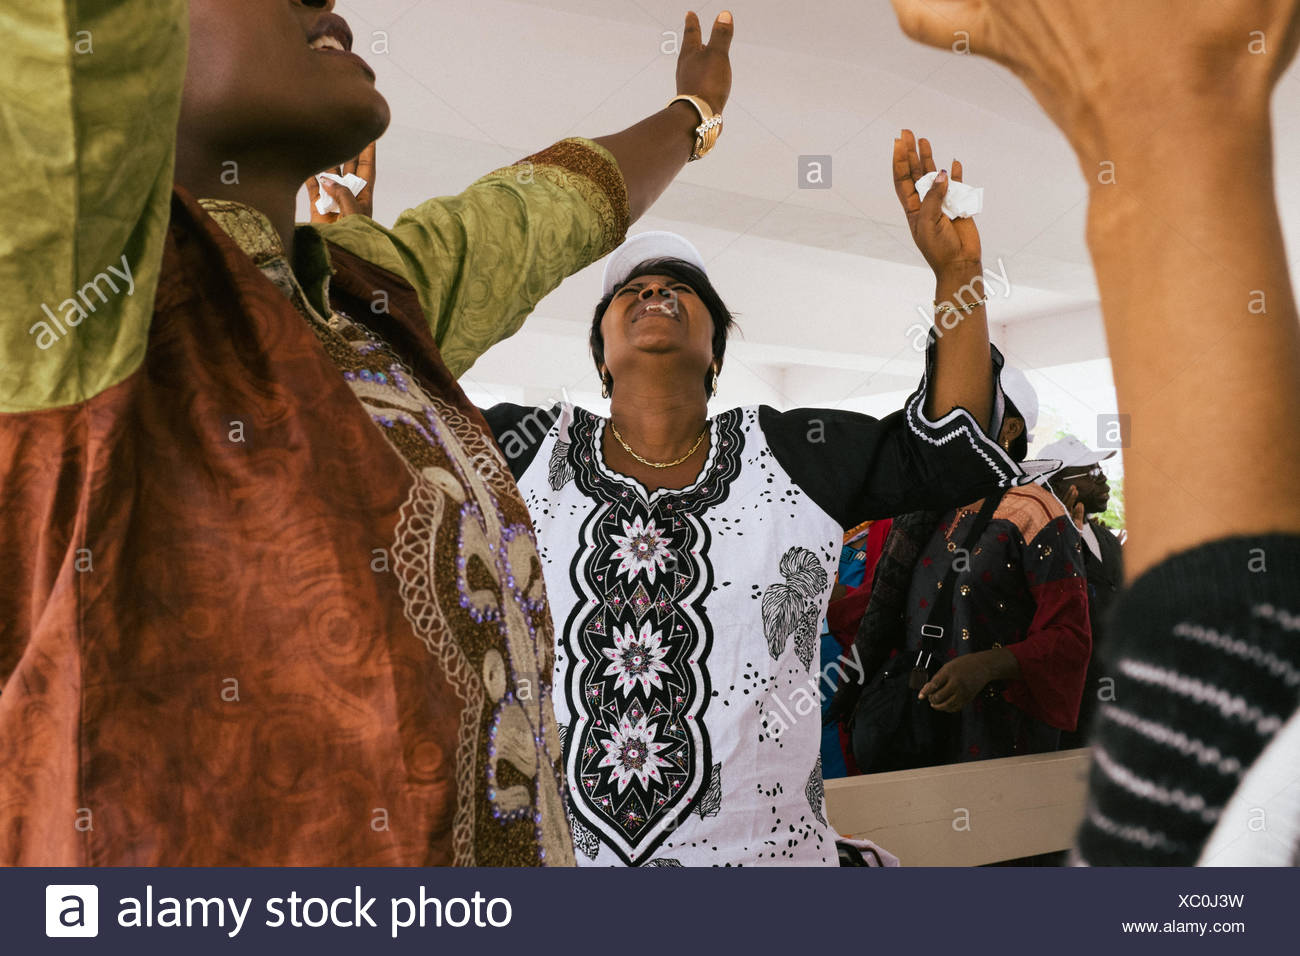 Women sing praise songs near the River Jordan, where devotees come to visit the place where Jesus is believed to have been baptized. - Stock Image